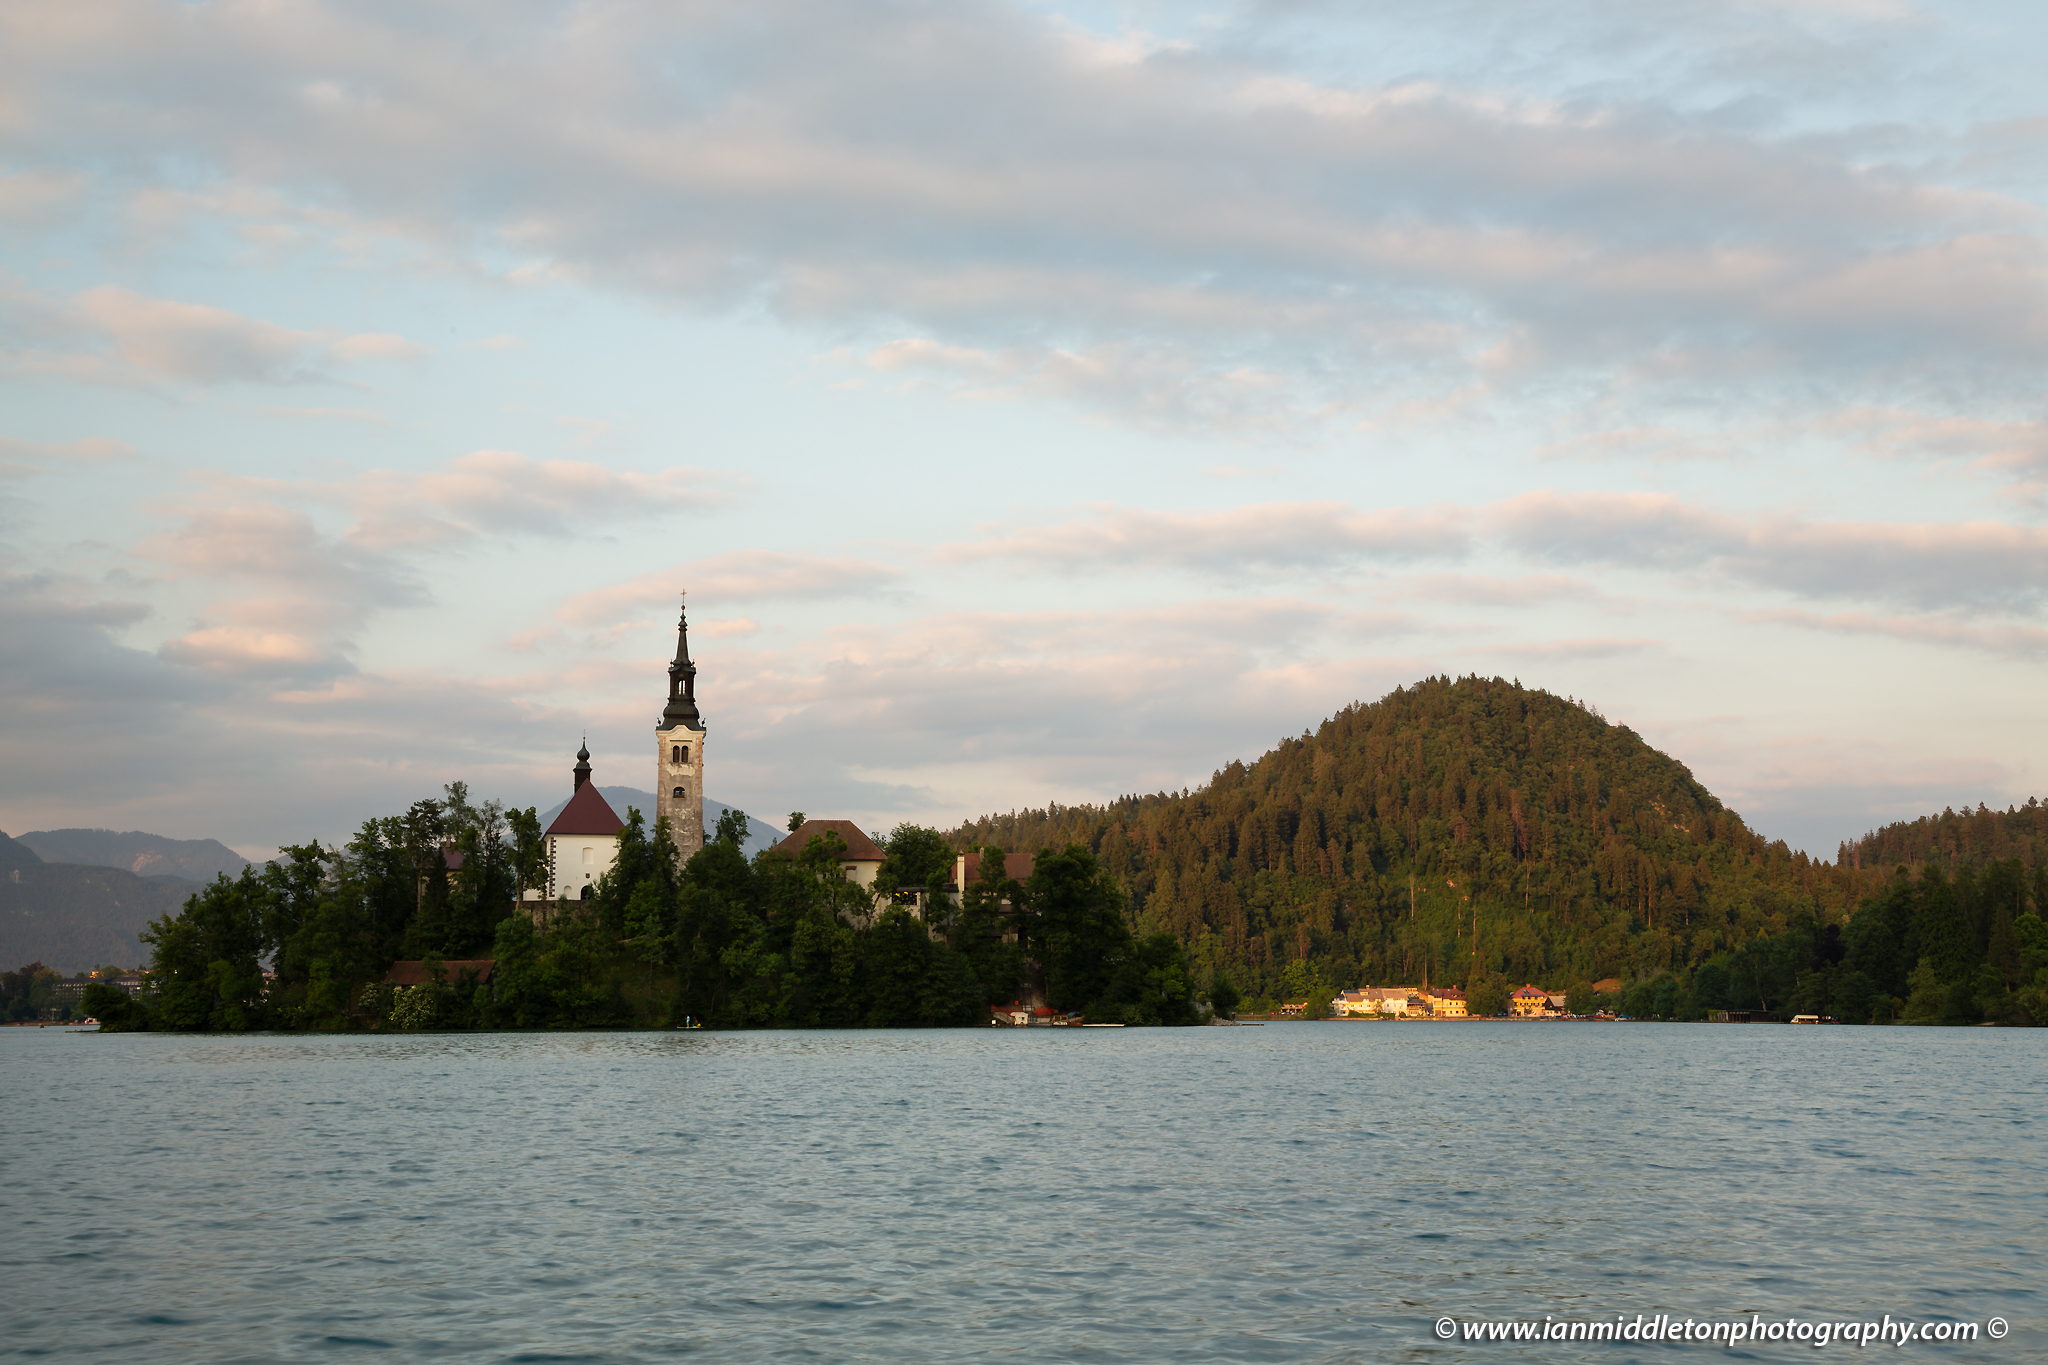 Sunset at Lake Bled's island church with the Karavank Mountains behind, Slovenia. - unedited version